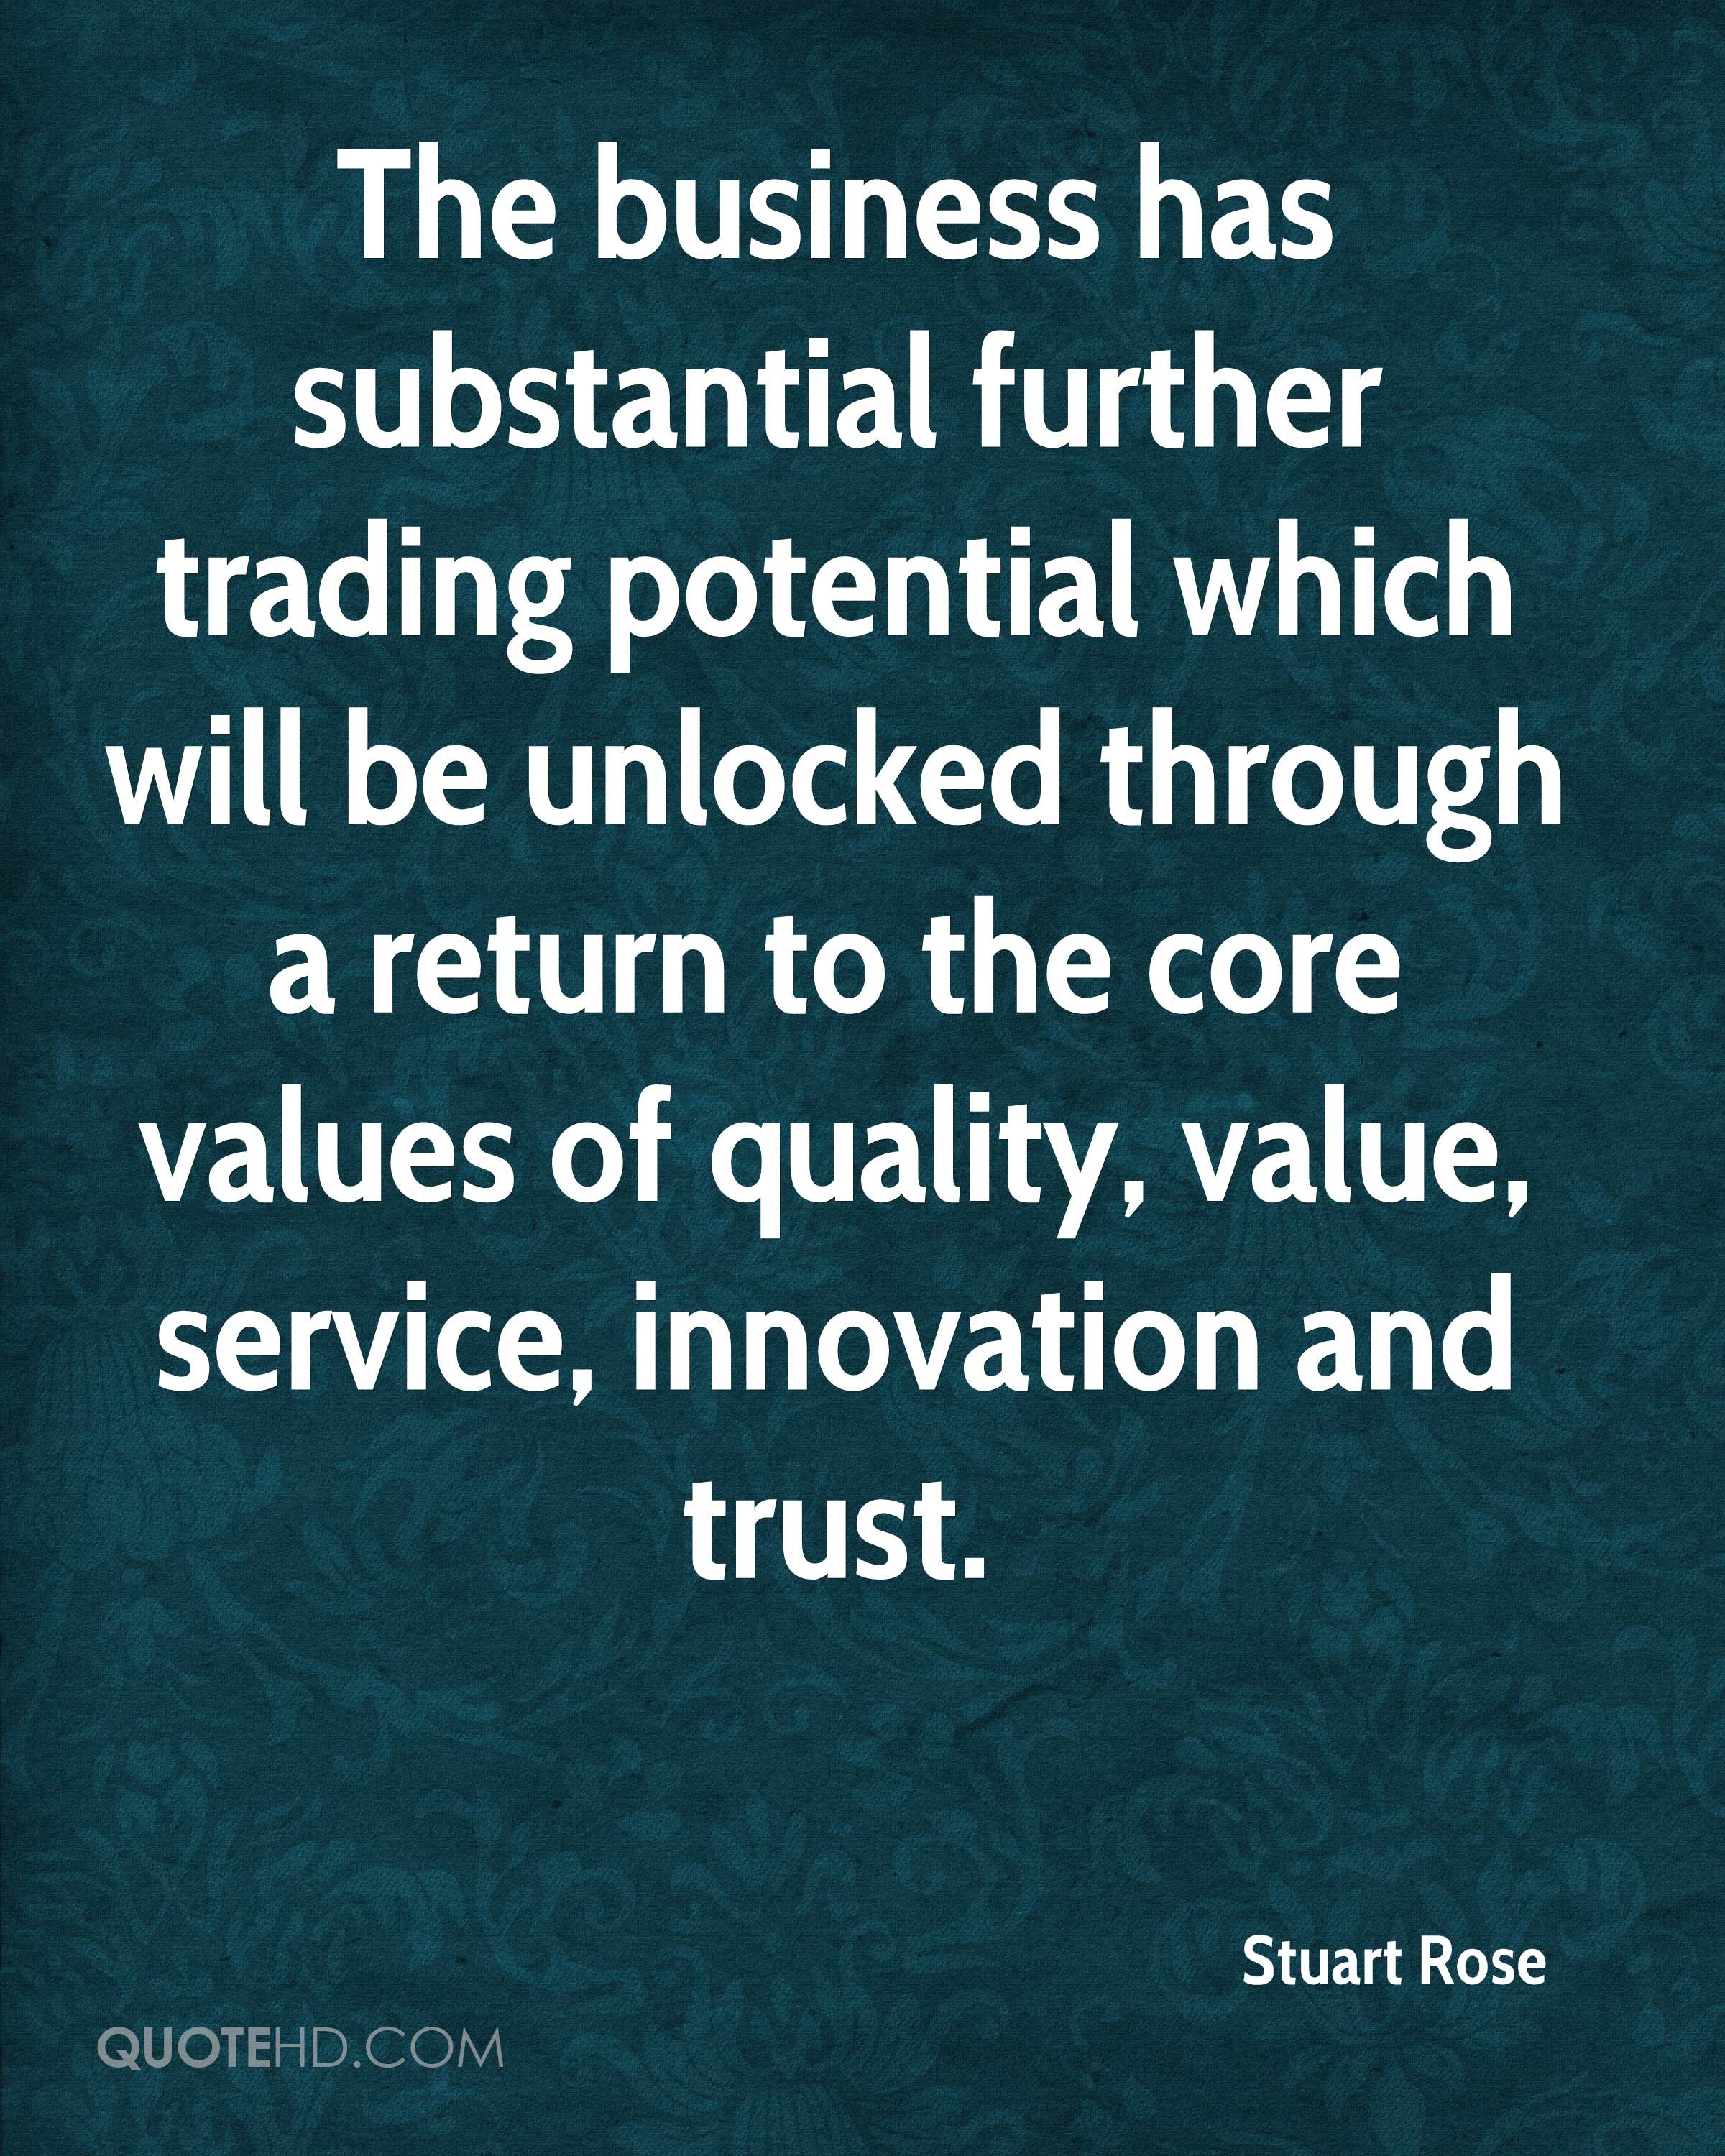 The business has substantial further trading potential which will be unlocked through a return to the core values of quality, value, service, innovation and trust.